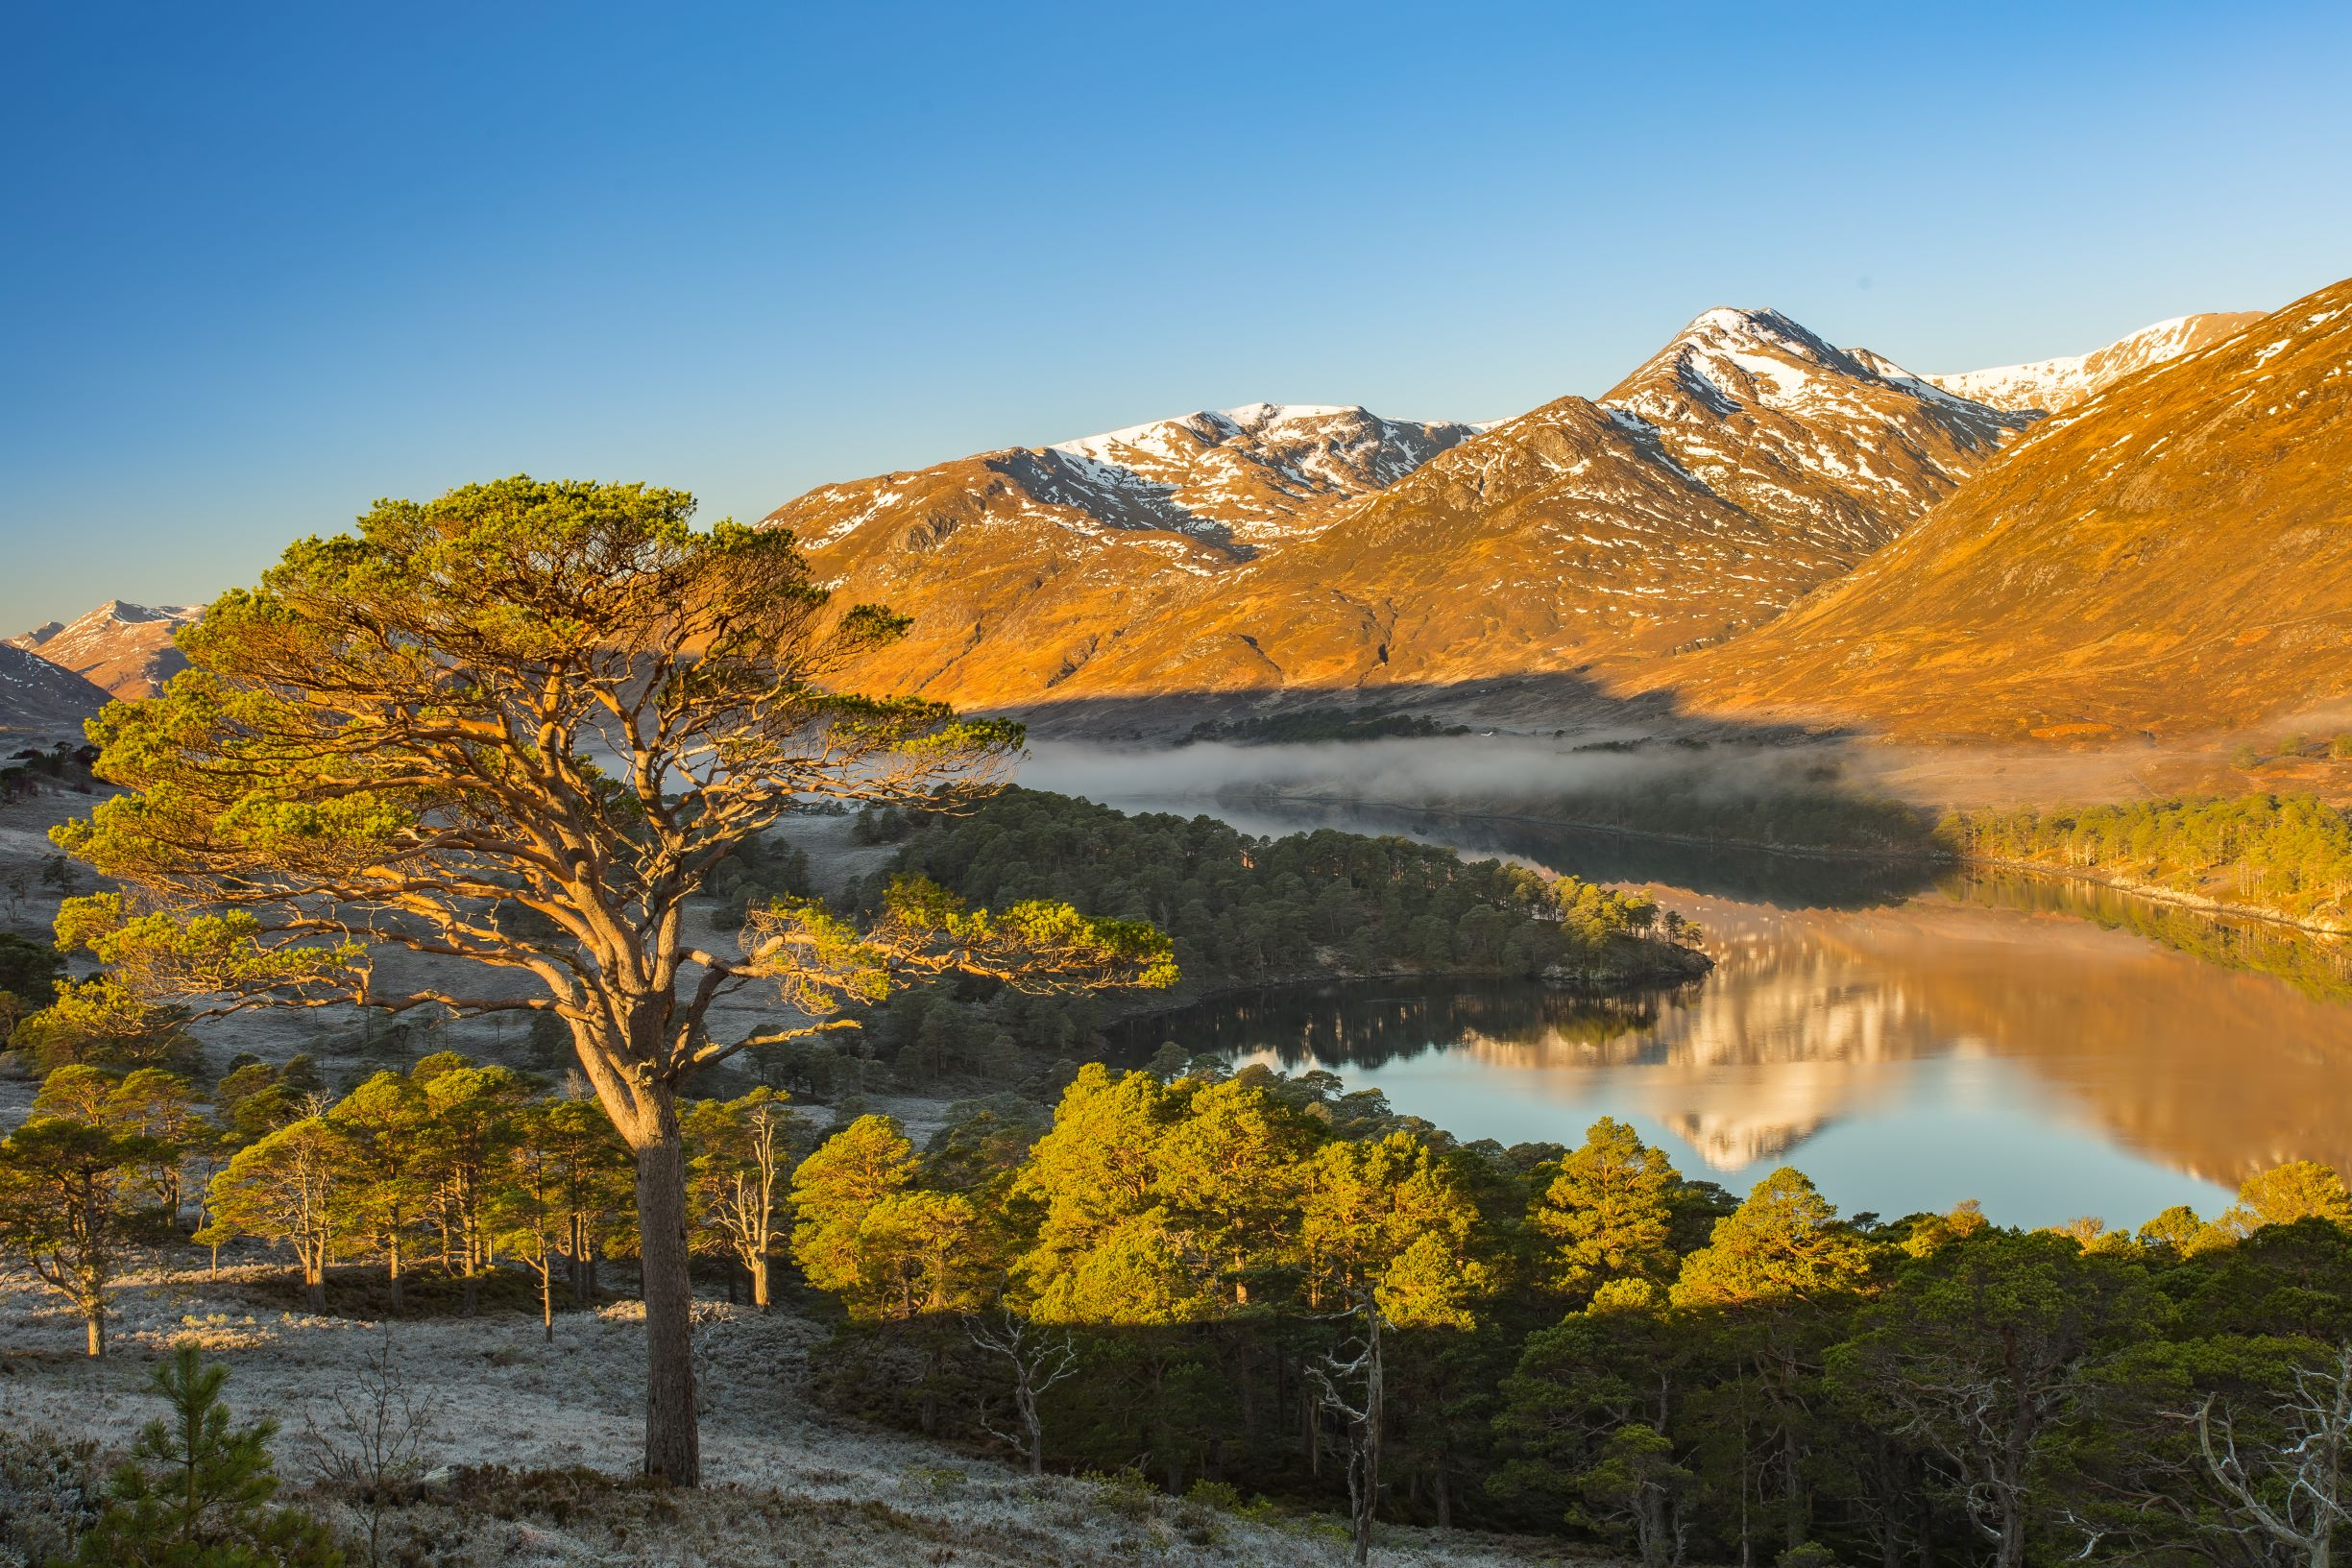 A single tree overlooking a misty glen surrounded by mountains at Glen Affric © Colin Leslie